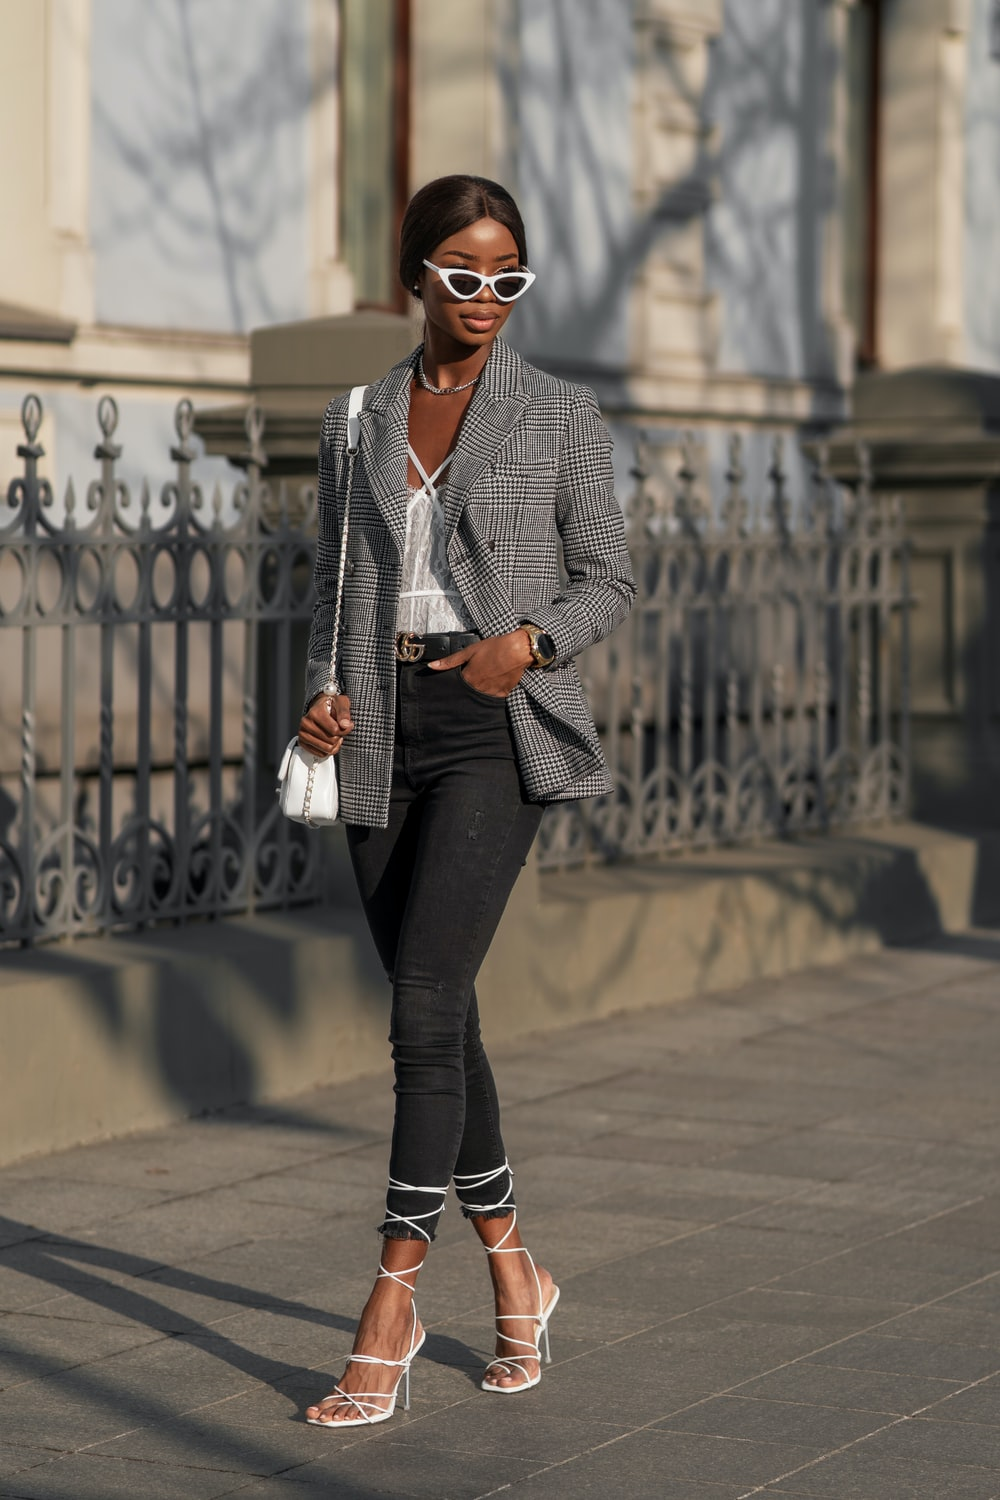 woman in gray blazer and black pants standing on gray concrete floor during daytime